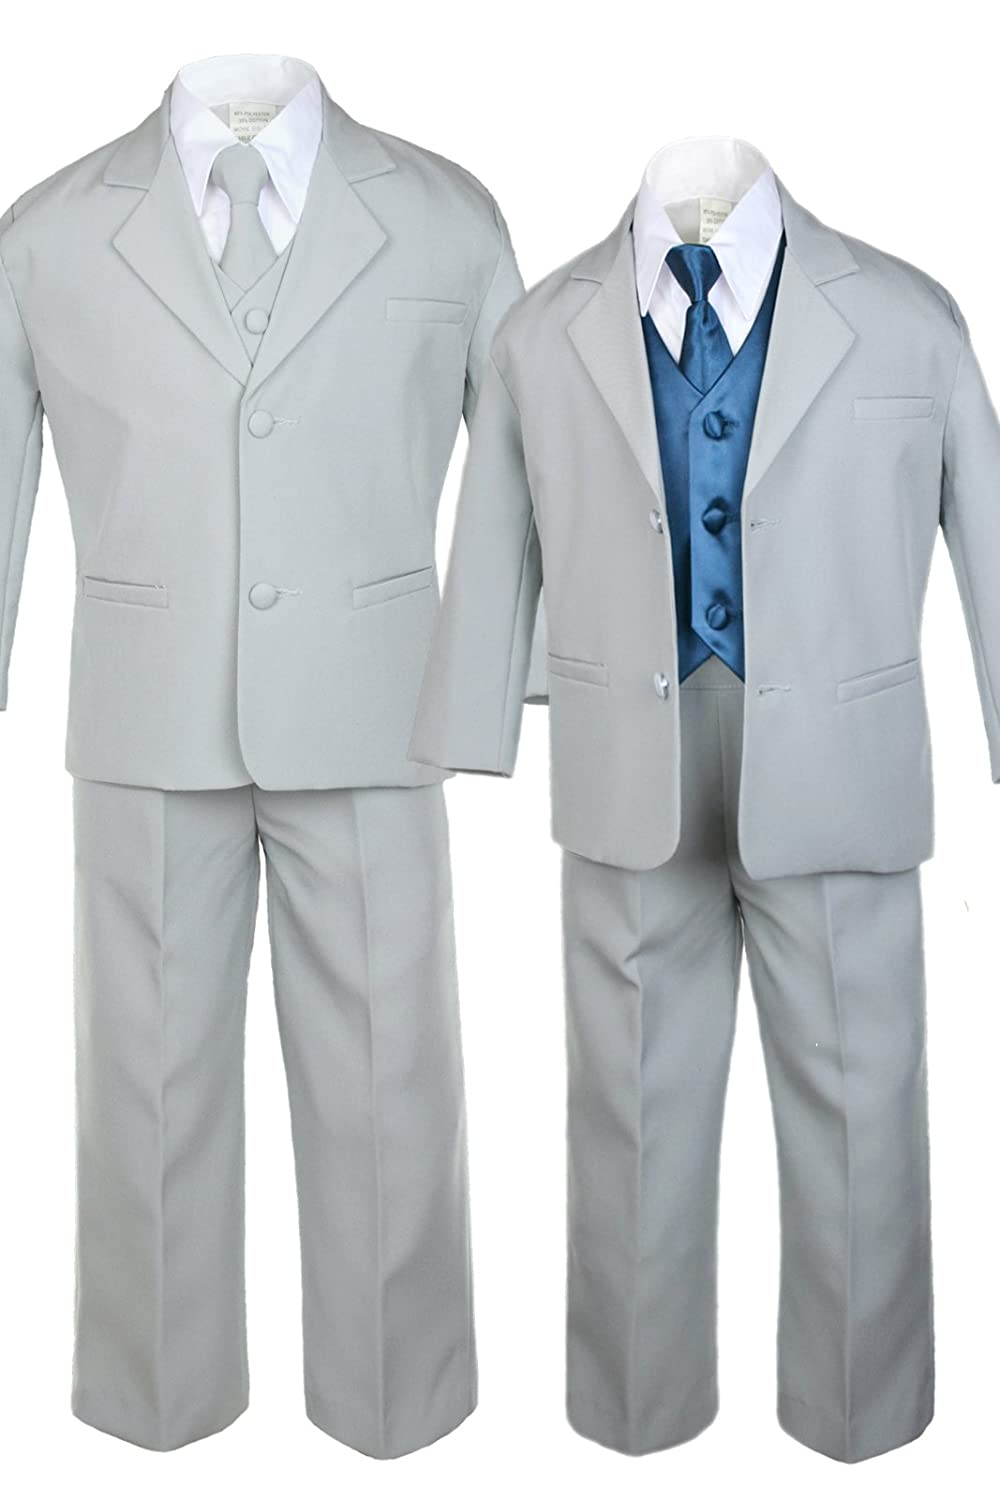 Unotux 7pc Boys Silver Suit with Satin Green Teal Vest Set from Baby to Teen